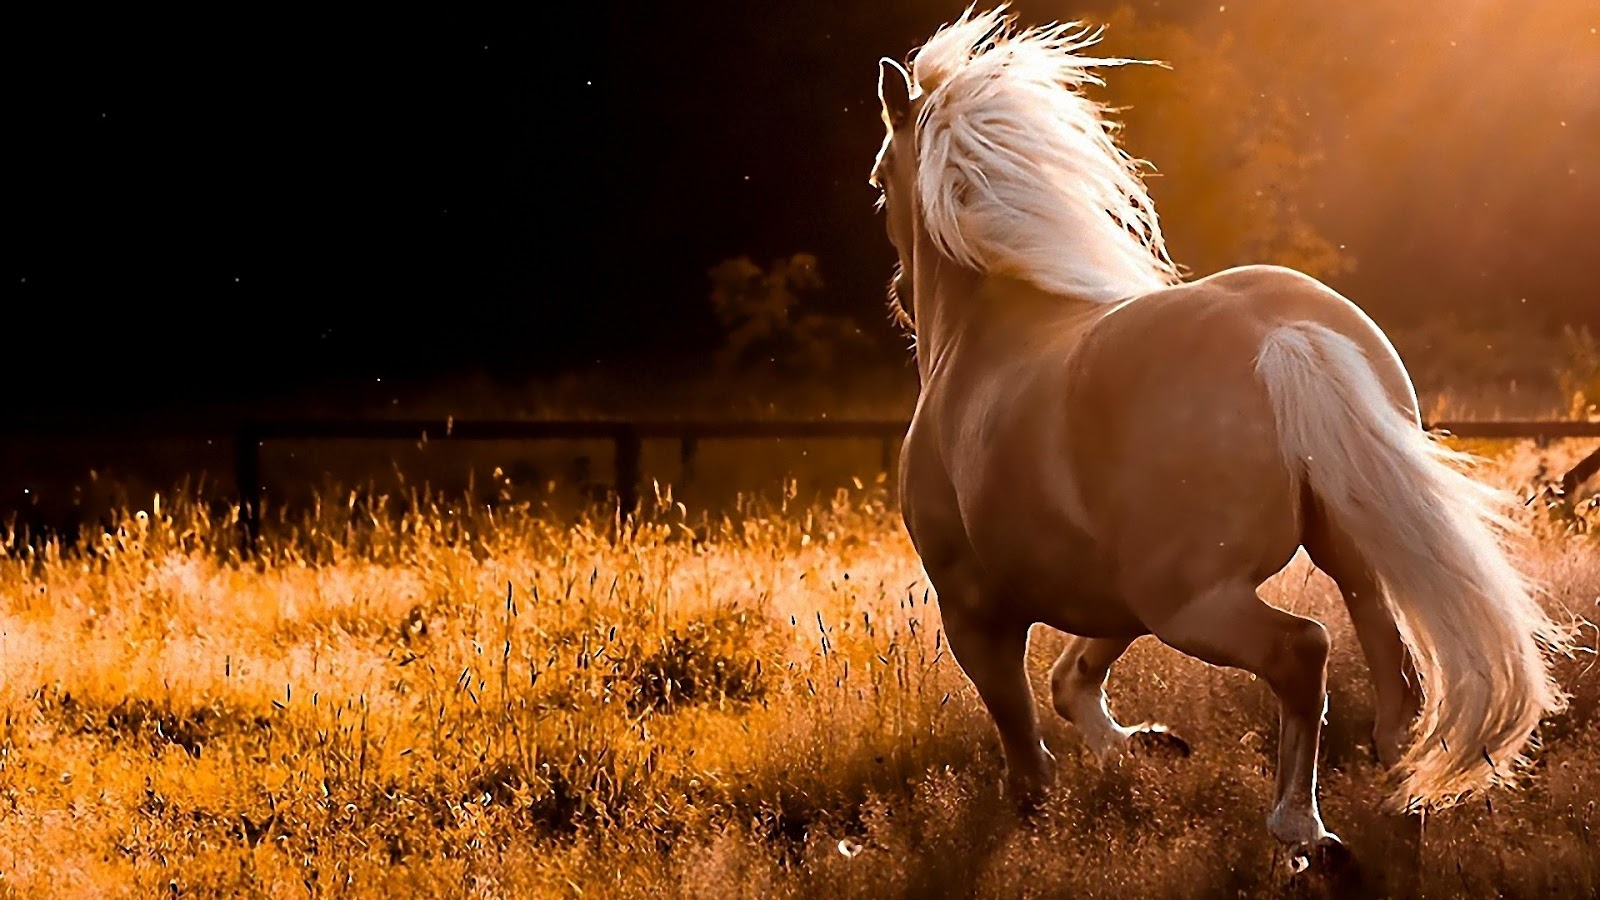 All Wallpapers: Beautiful Horse Hd Wallpapers 2013